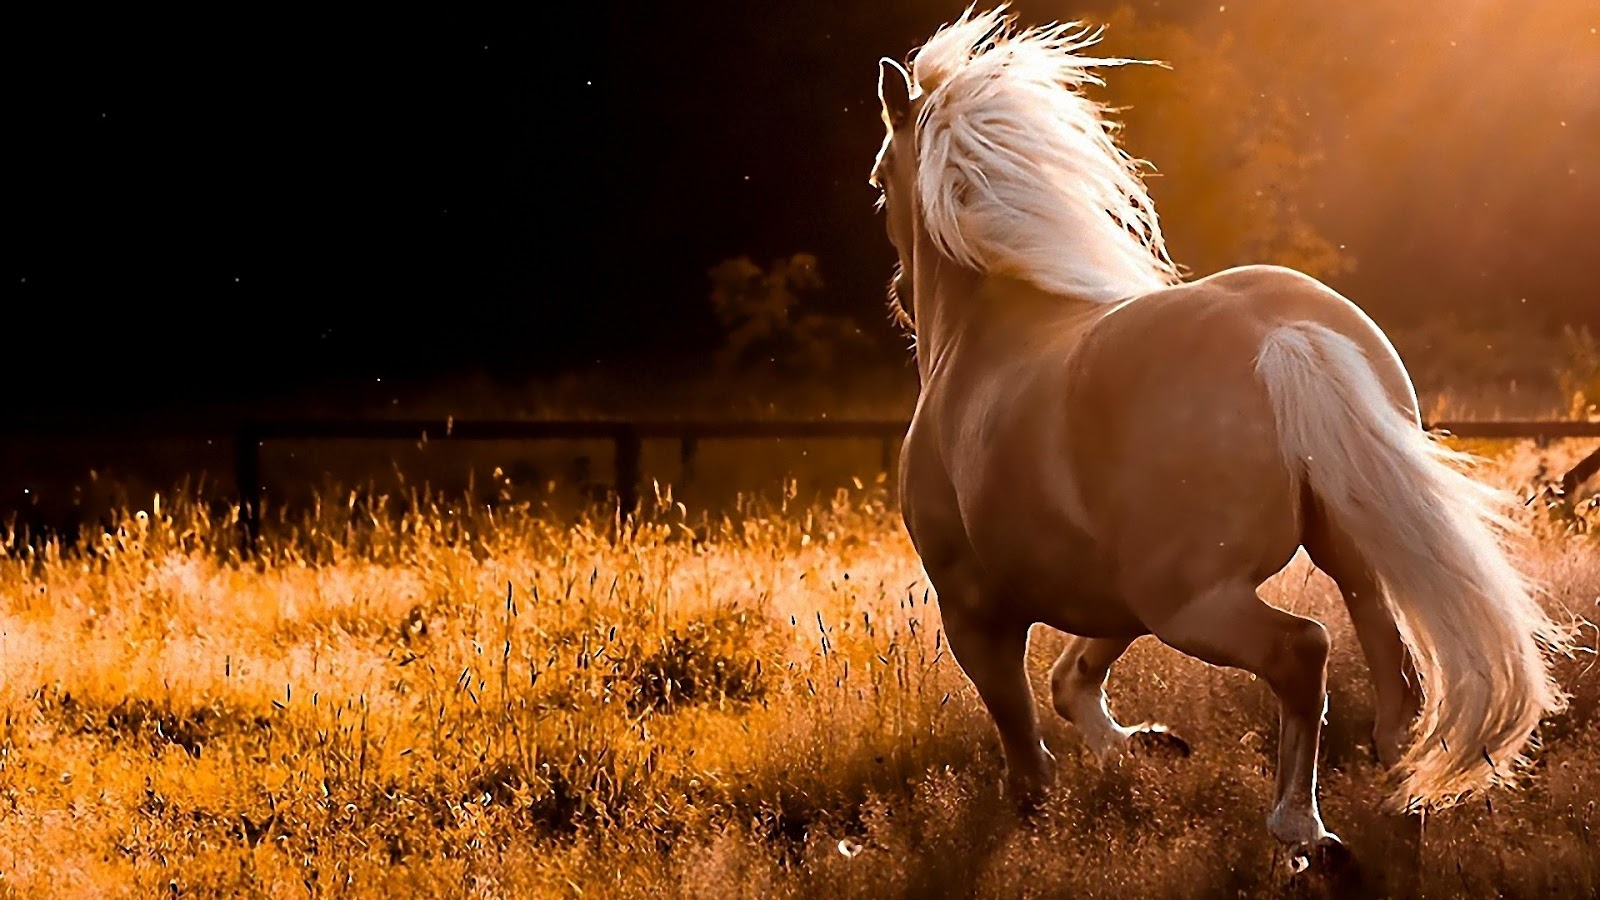 All Wallpapers: Beautiful Horse Hd Wallpapers 2013